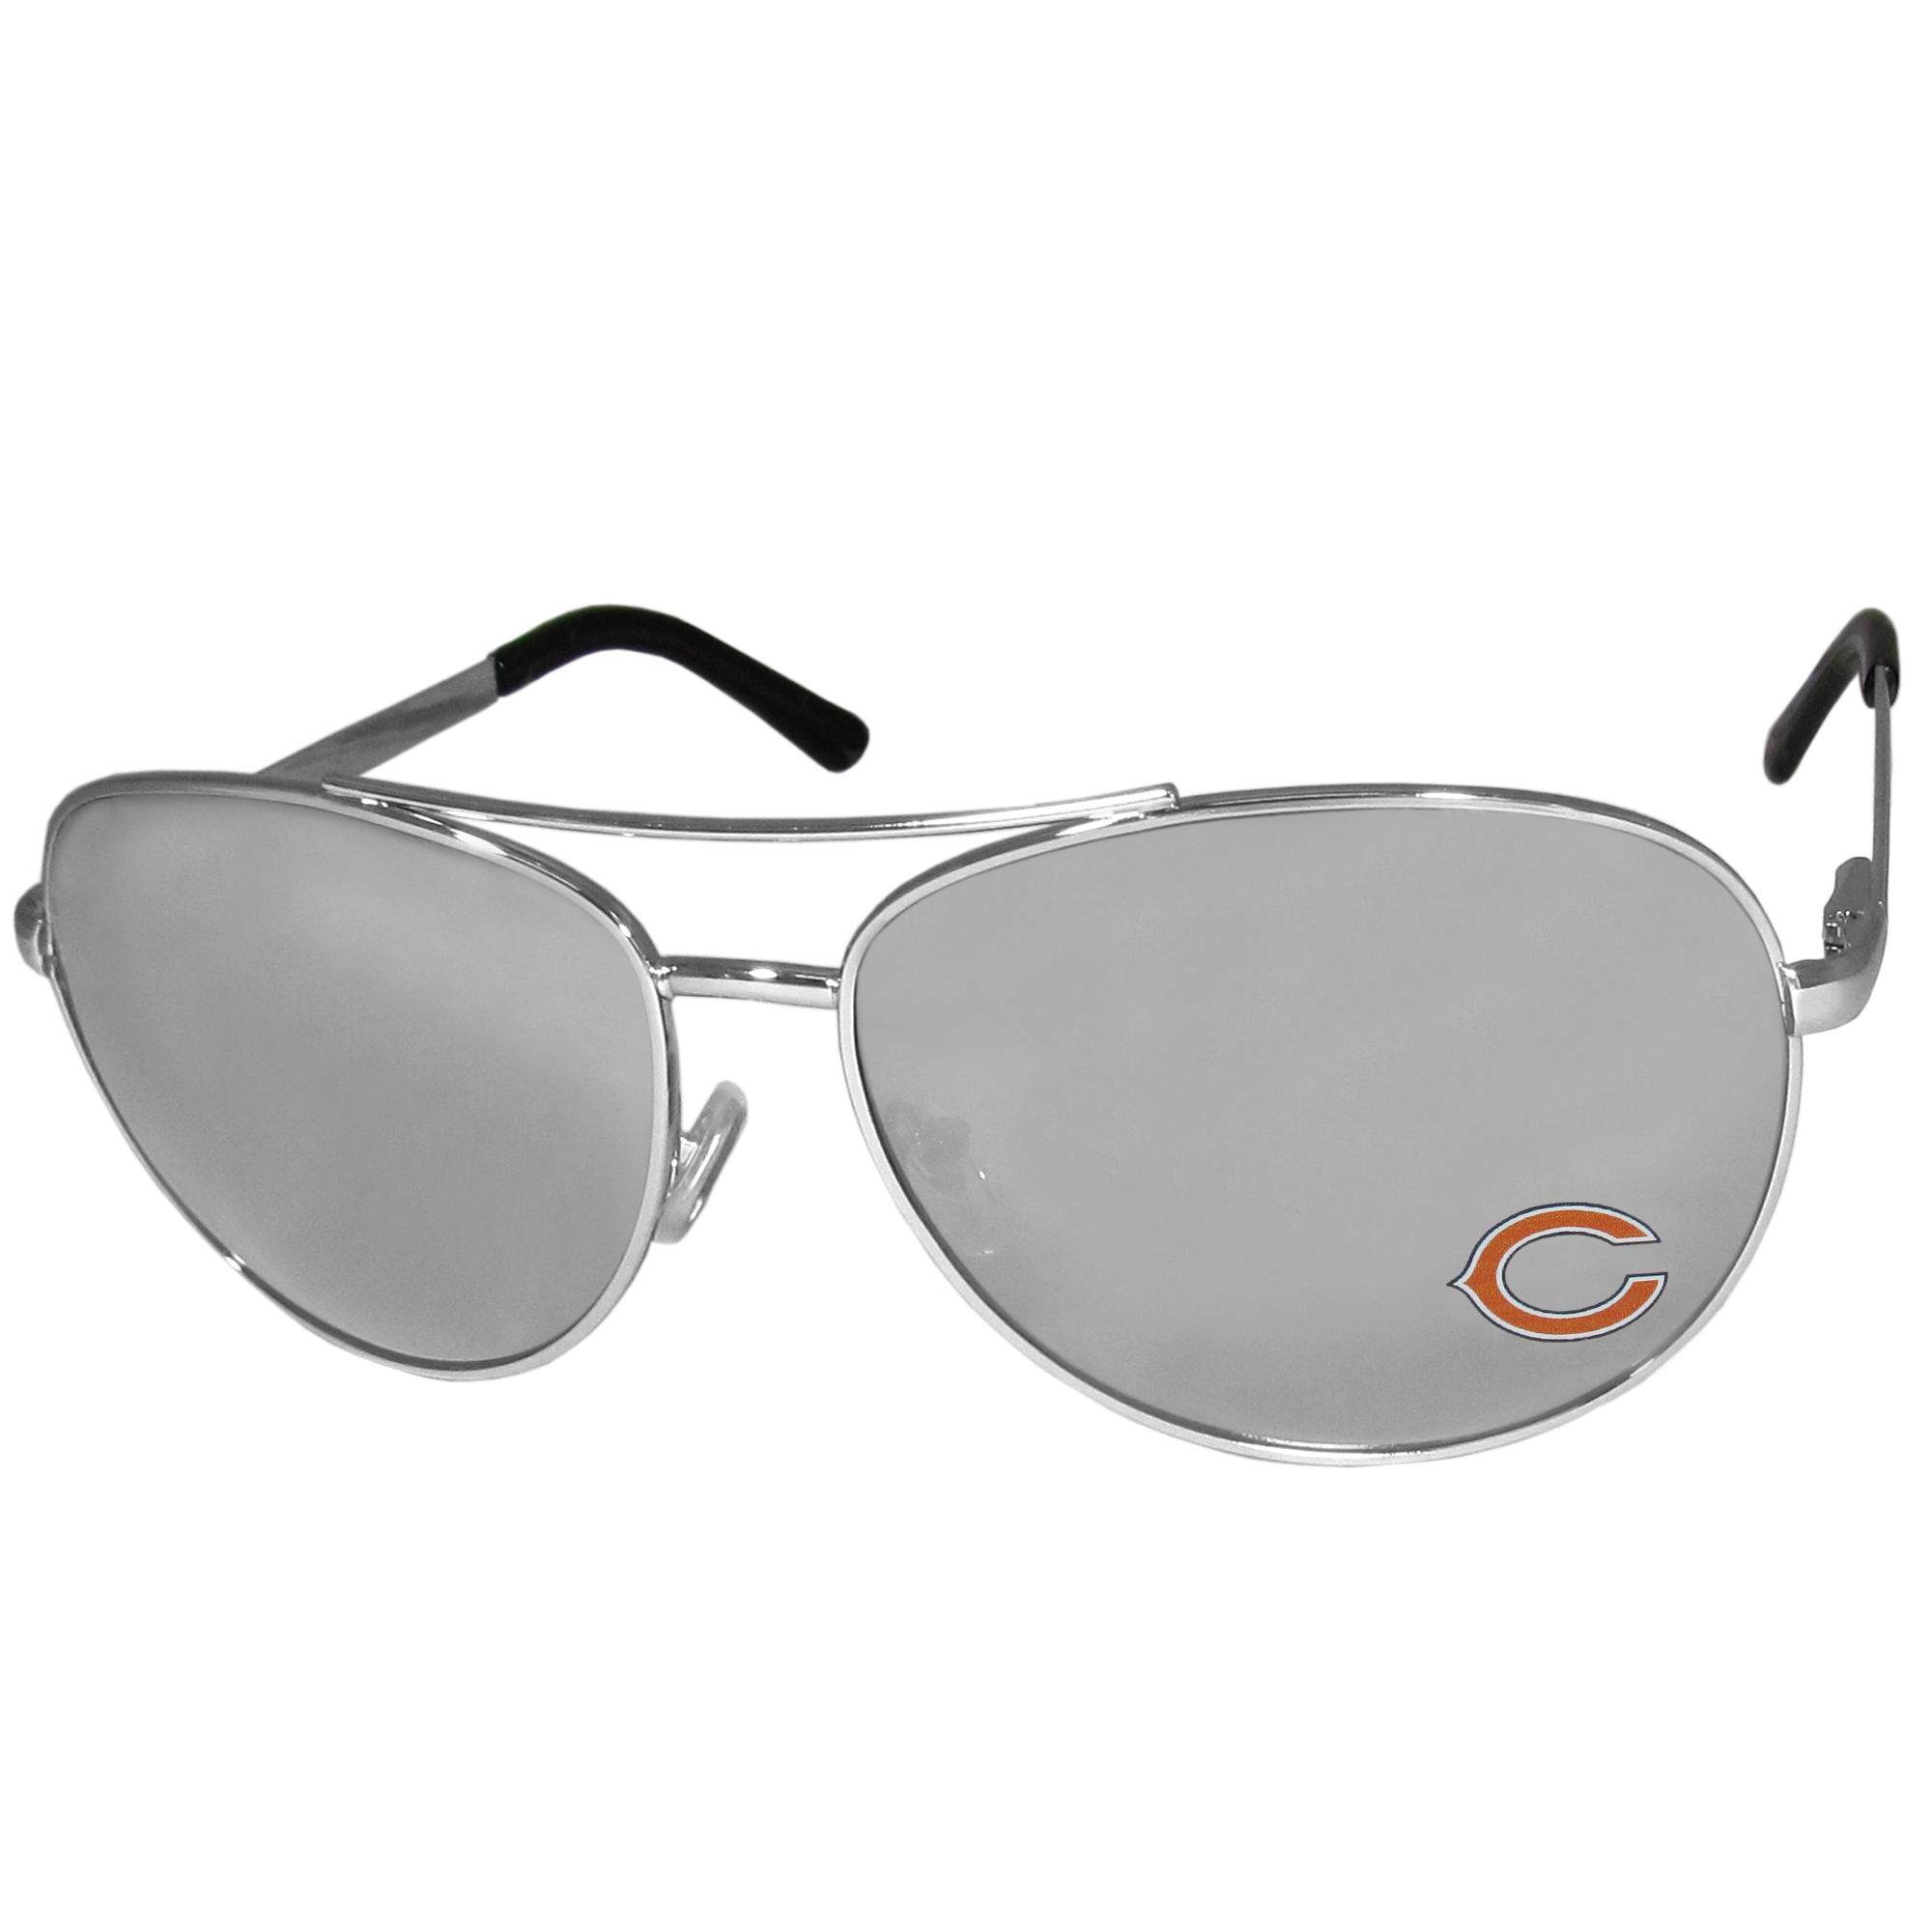 Chicago Bears Aviator Sunglasses - Officially licensed NFL Chicago Bears aviator sunglasses have the iconic aviator style with mirrored lenses and metal frames. The Chicago Bears Aviator Sunglasses feature a silk screened Chicago Bears logo in the corner of the lens. 100% UVA/UVB protection. Officially licensed NFL product Licensee: Siskiyou Buckle .com